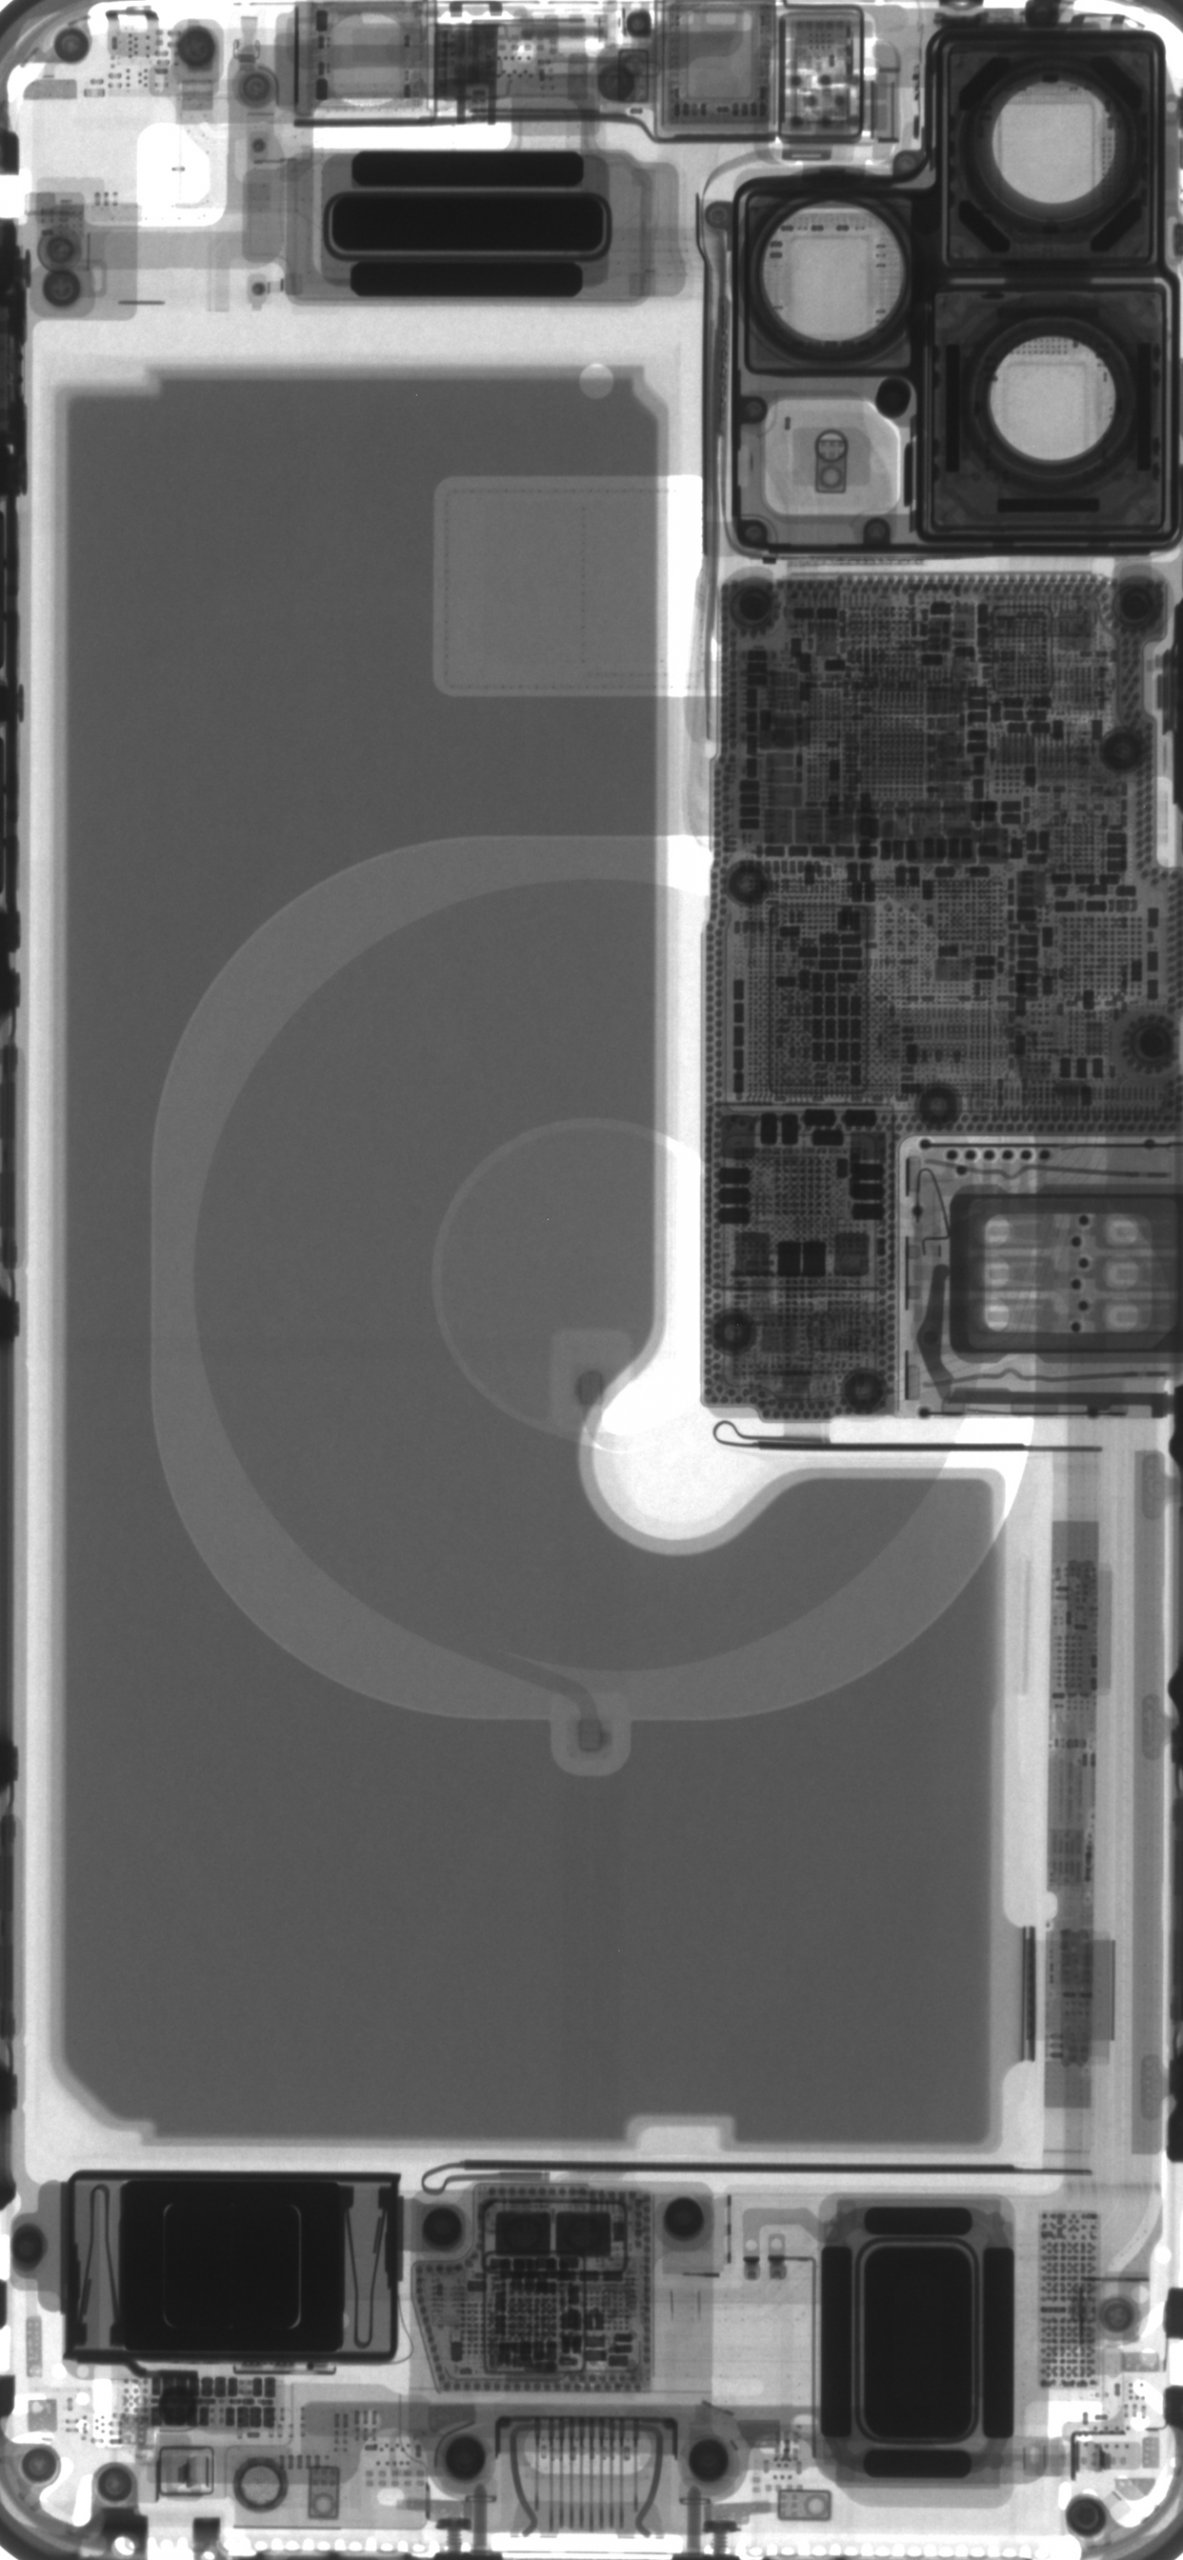 An X-ray of an iPhone 11 Pro Max.